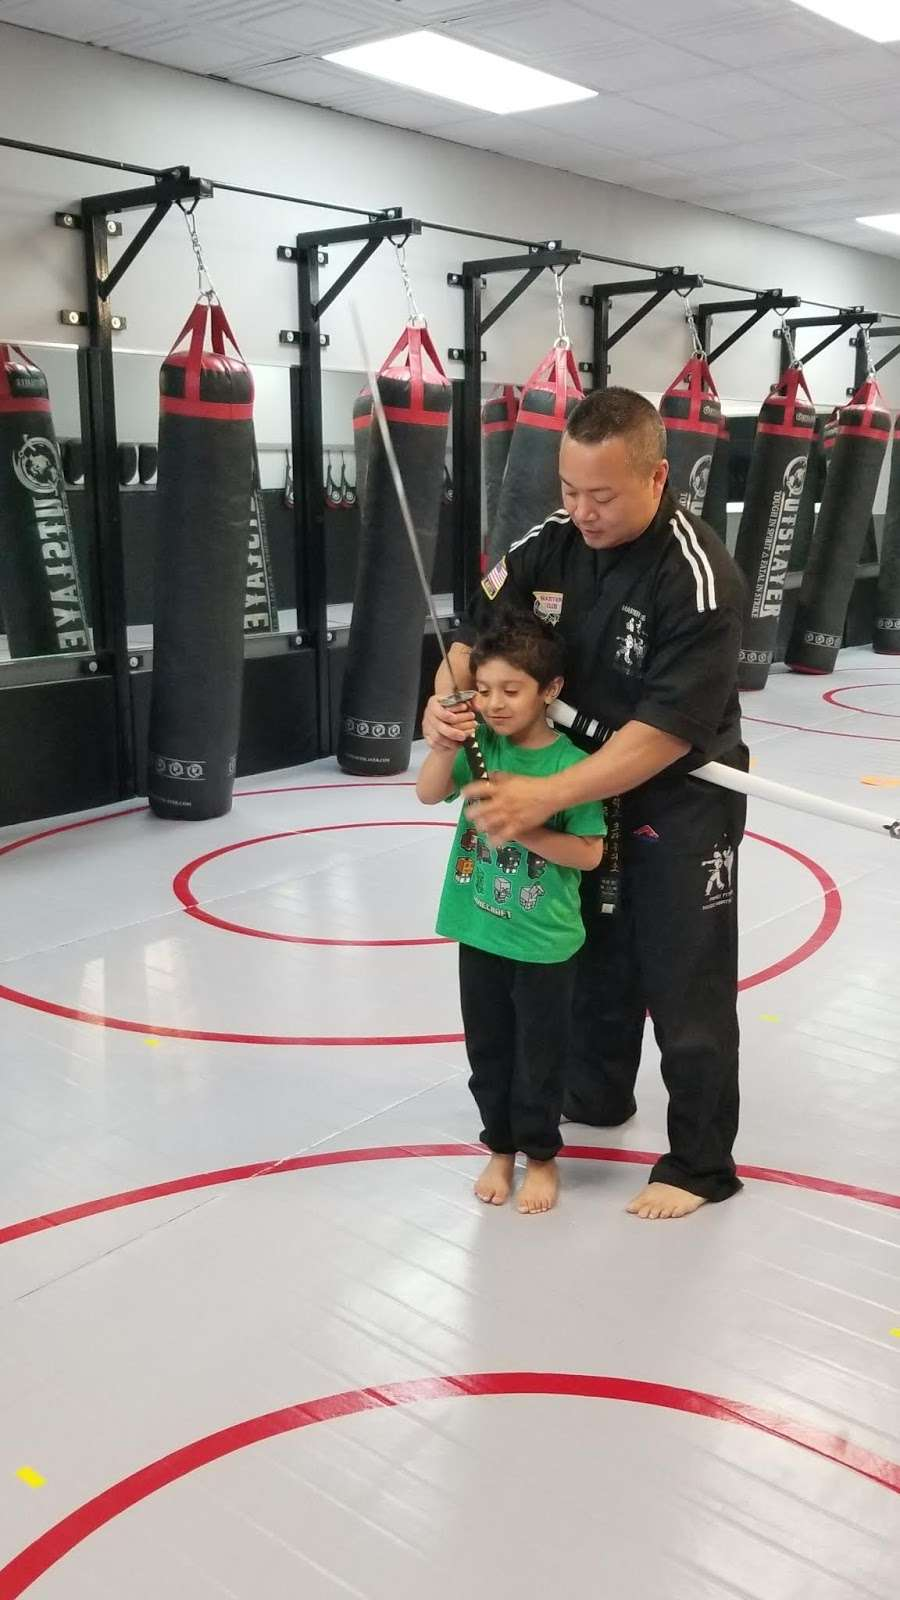 Family Fitness Karate & Kickboxing - Downtown Jersey City - health  | Photo 3 of 4 | Address: 263 Monmouth St, Jersey City, NJ 07302, USA | Phone: (201) 706-2201